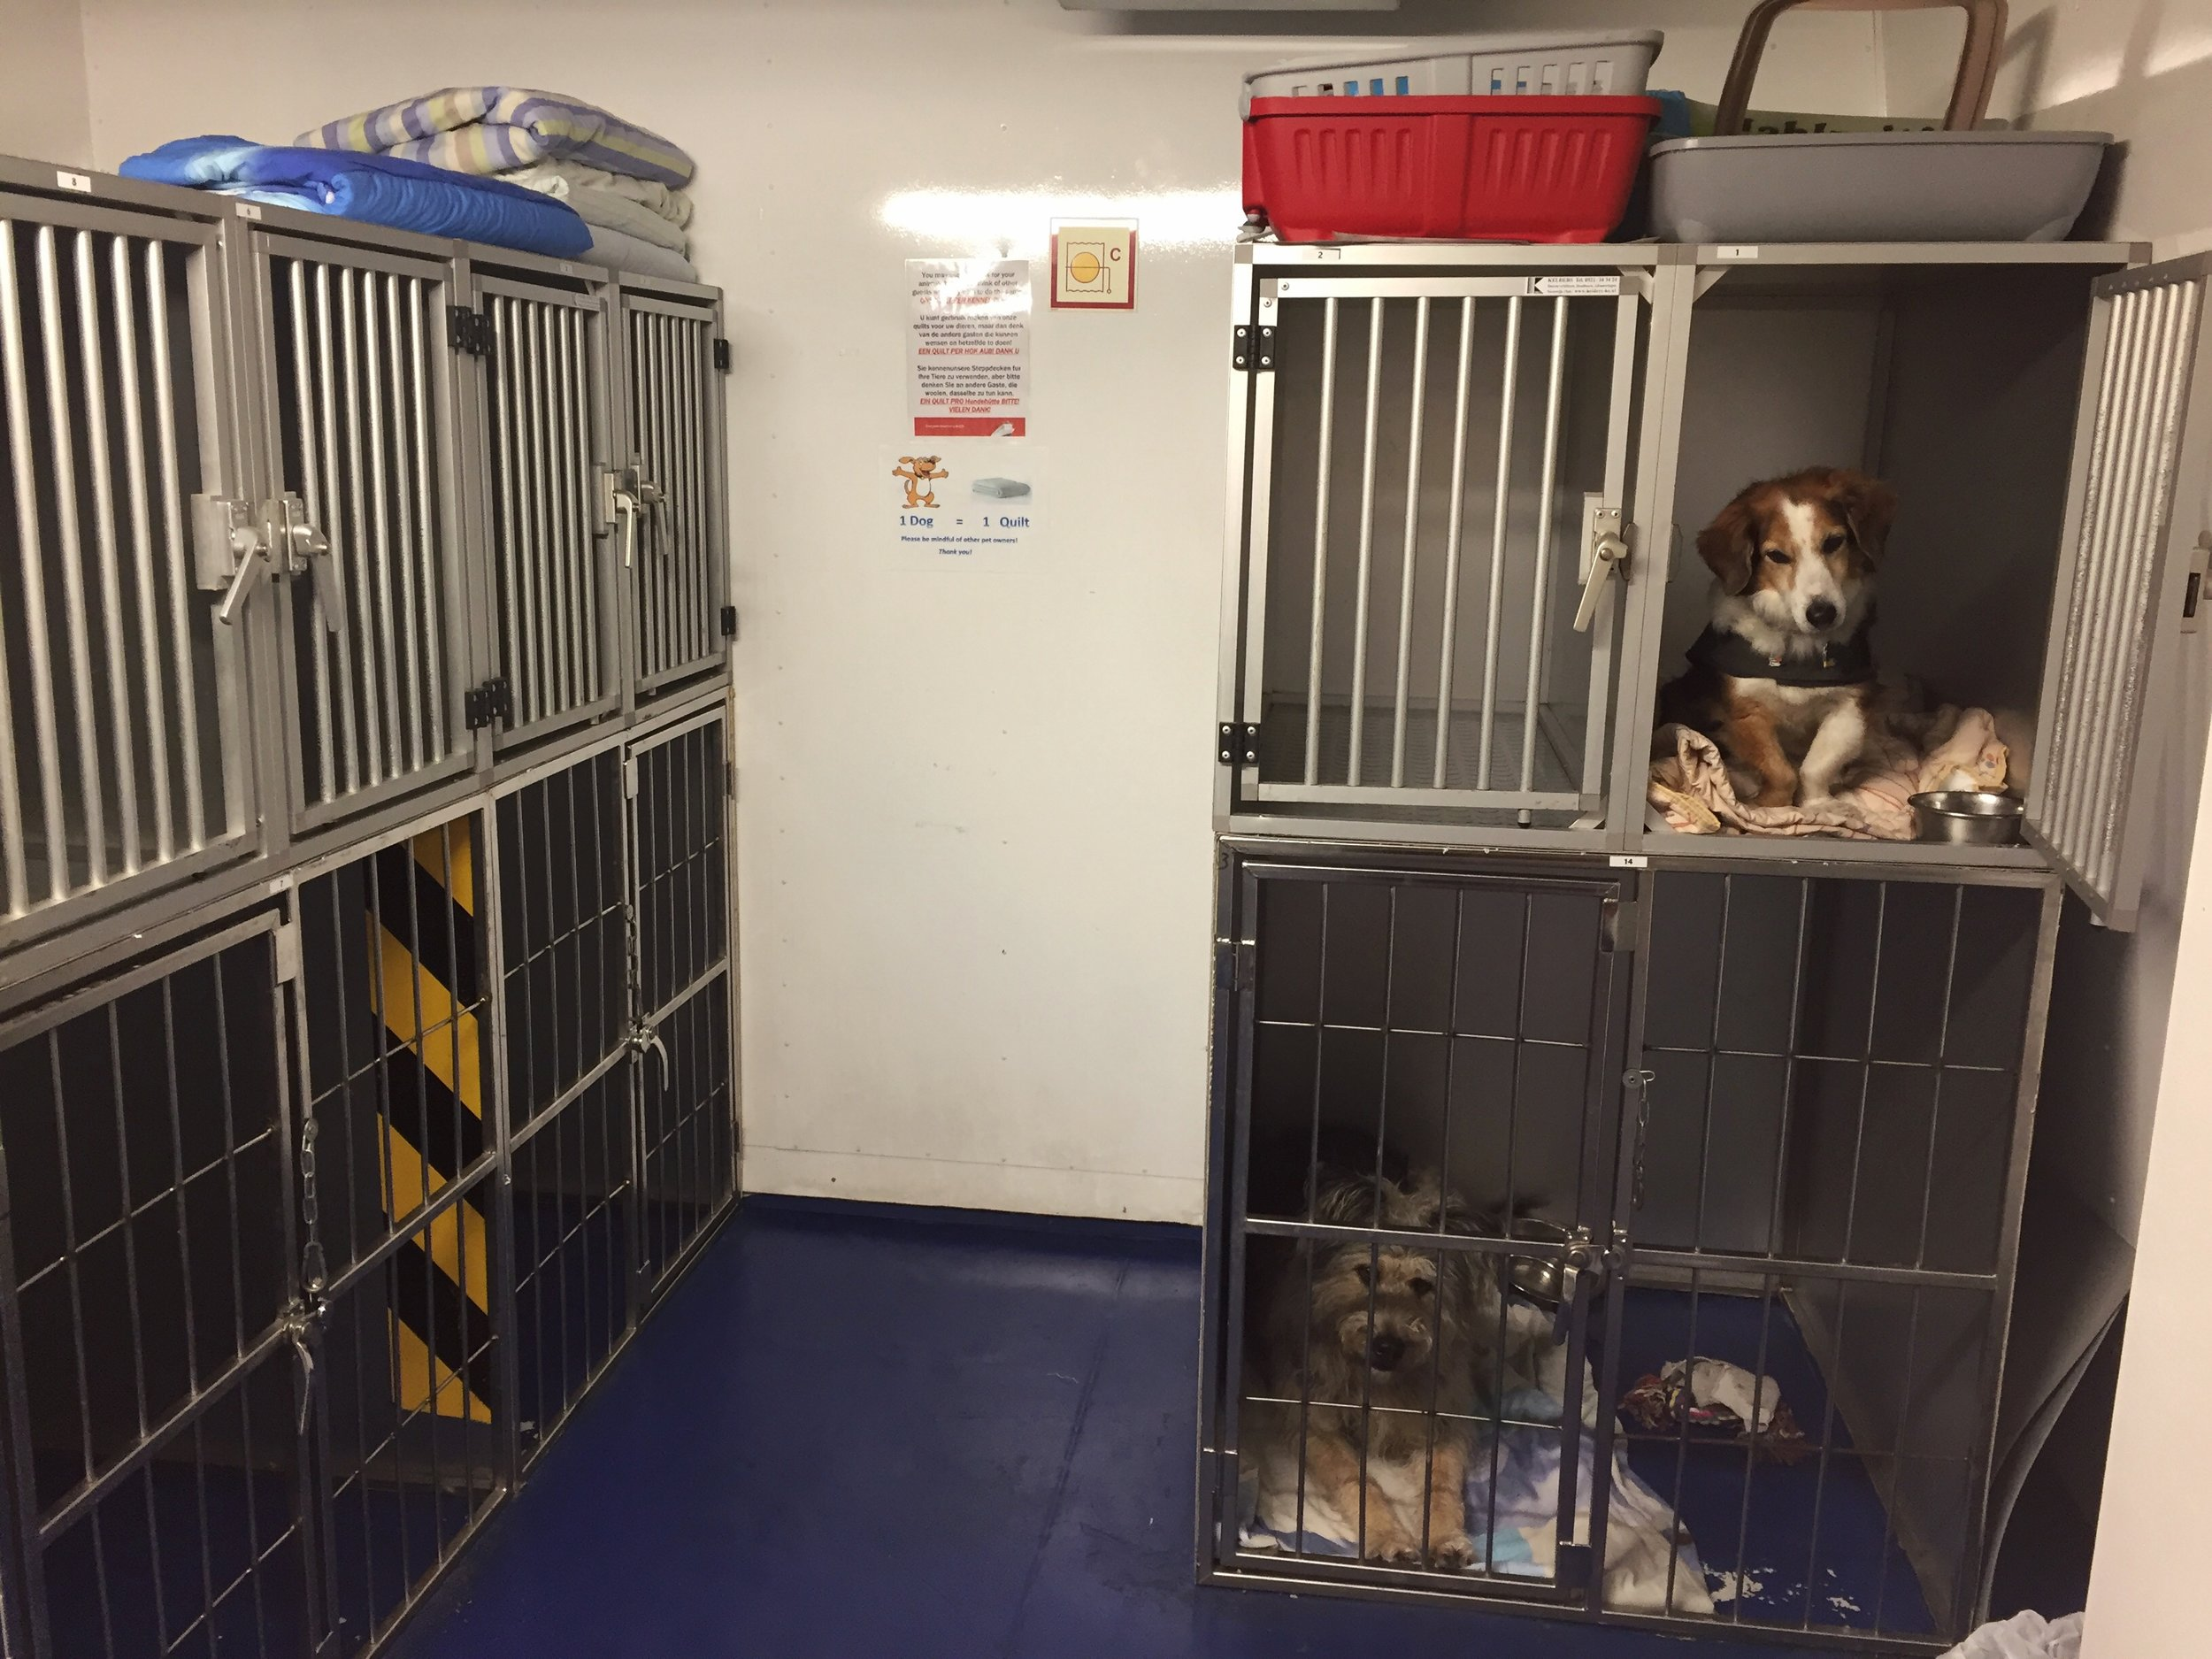 in a kennel...